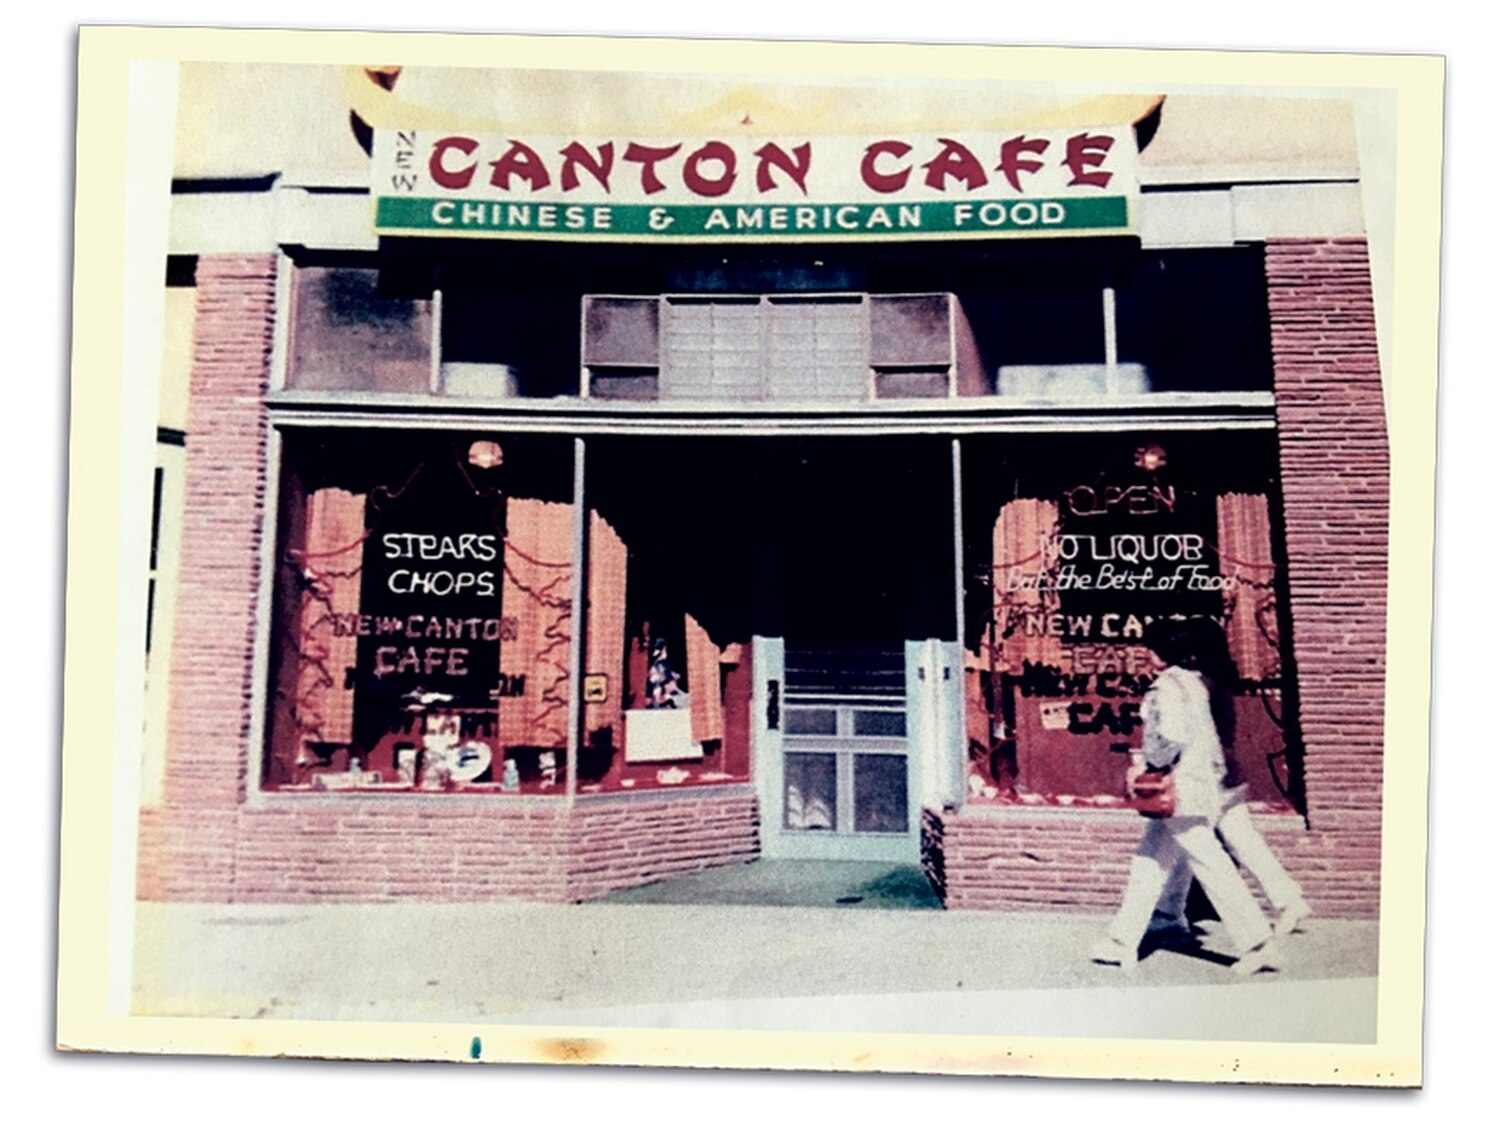 The New Canton Cafe dished up Chinese and American food for more than years. Here it is in the 1960s.